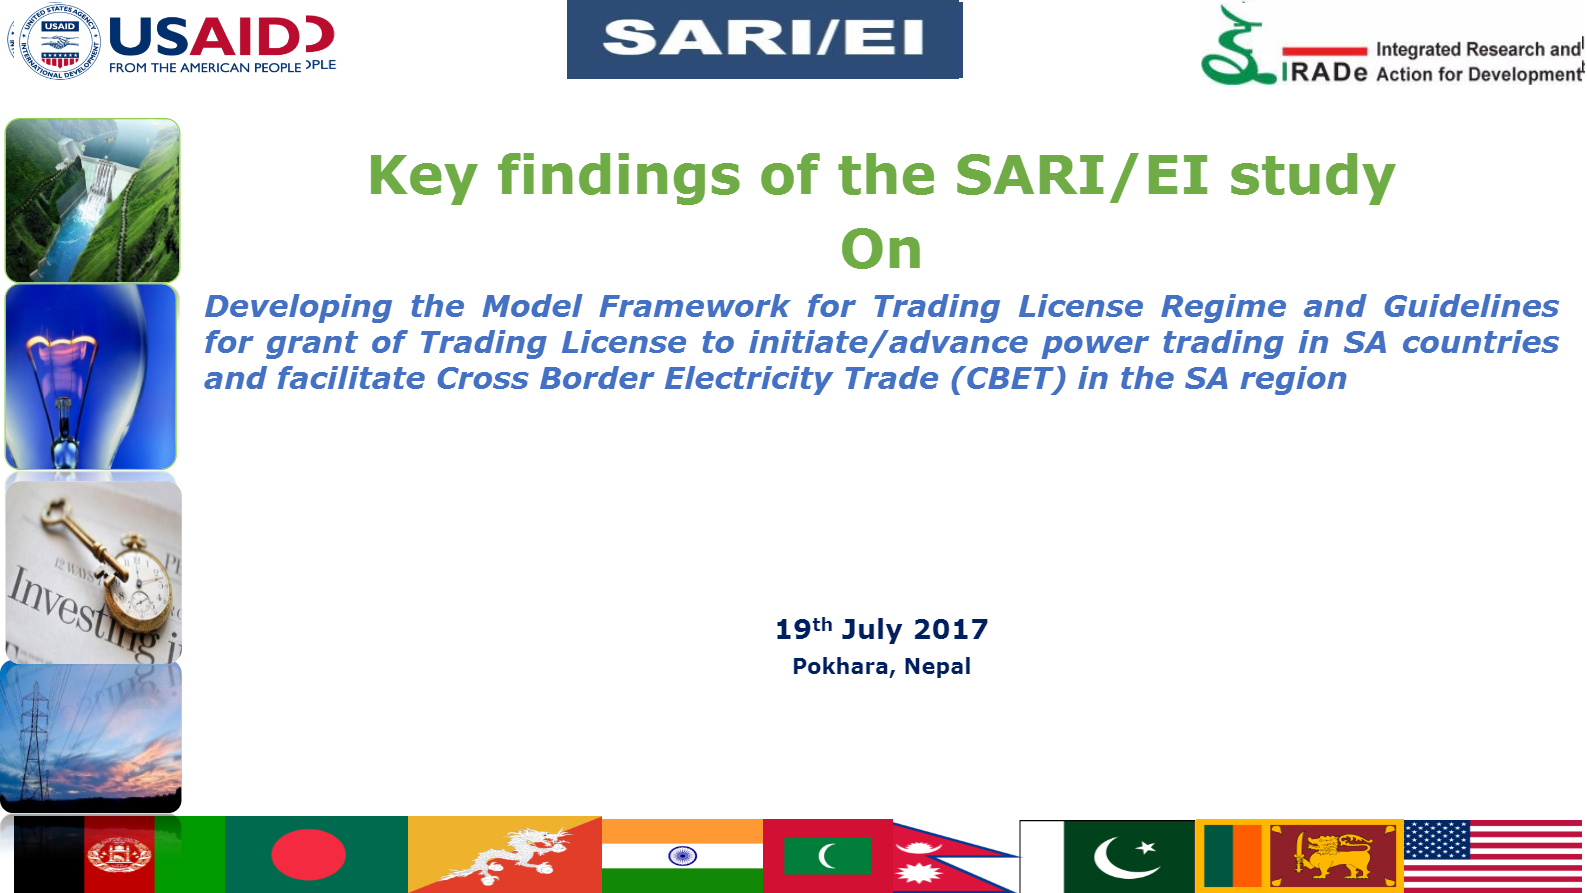 Developing-the-Model-Framework-for-Trading-License-Regime-and-Guidelines-for-grant-of-Trading-License-to-CBET-in-the-SA-region-Delloite-Rajiv-SARI-EI-IRADE-19th-July2017